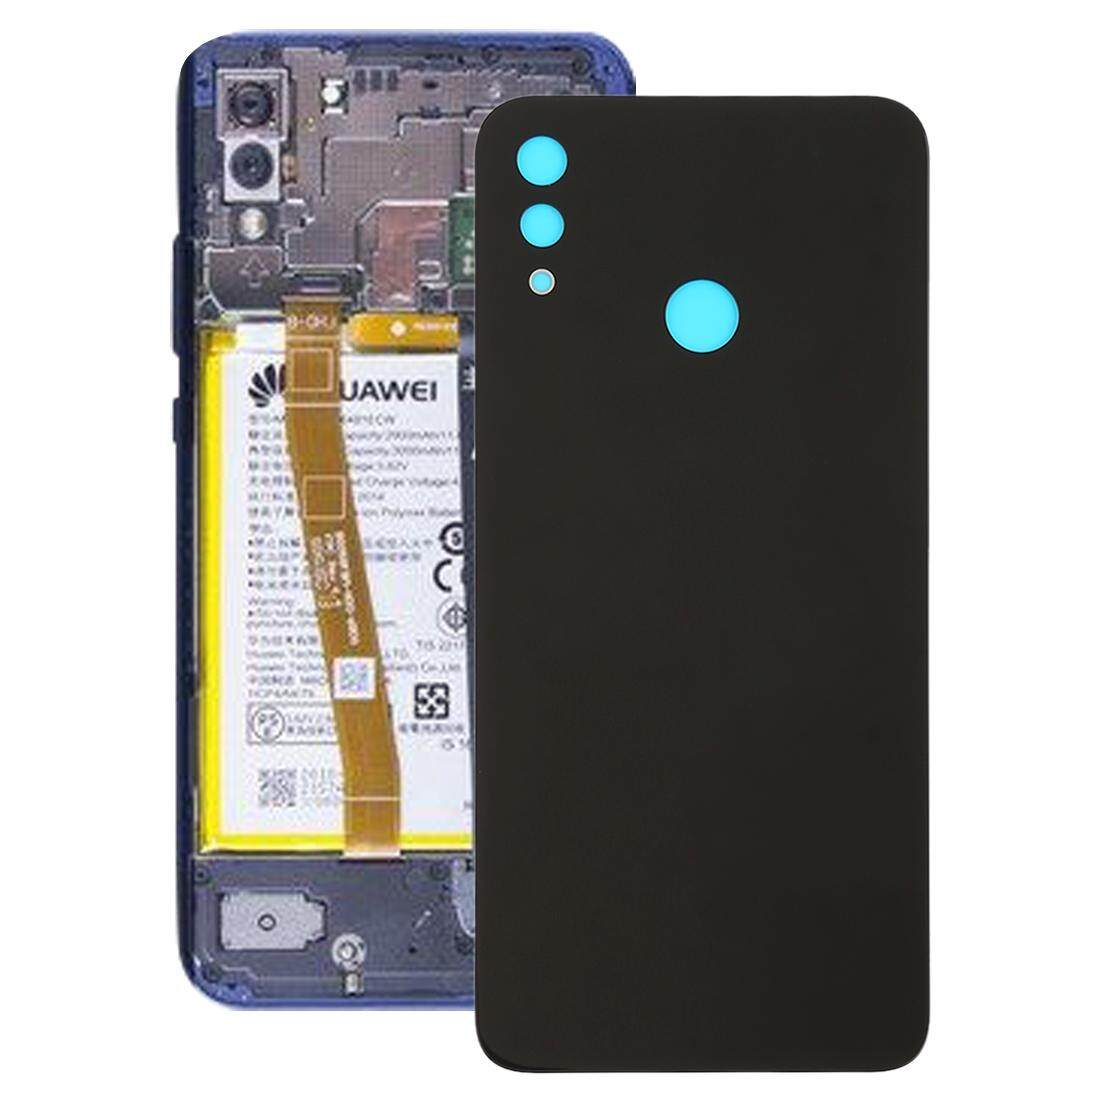 Back Cover for Huawei Nova 3i(Black)